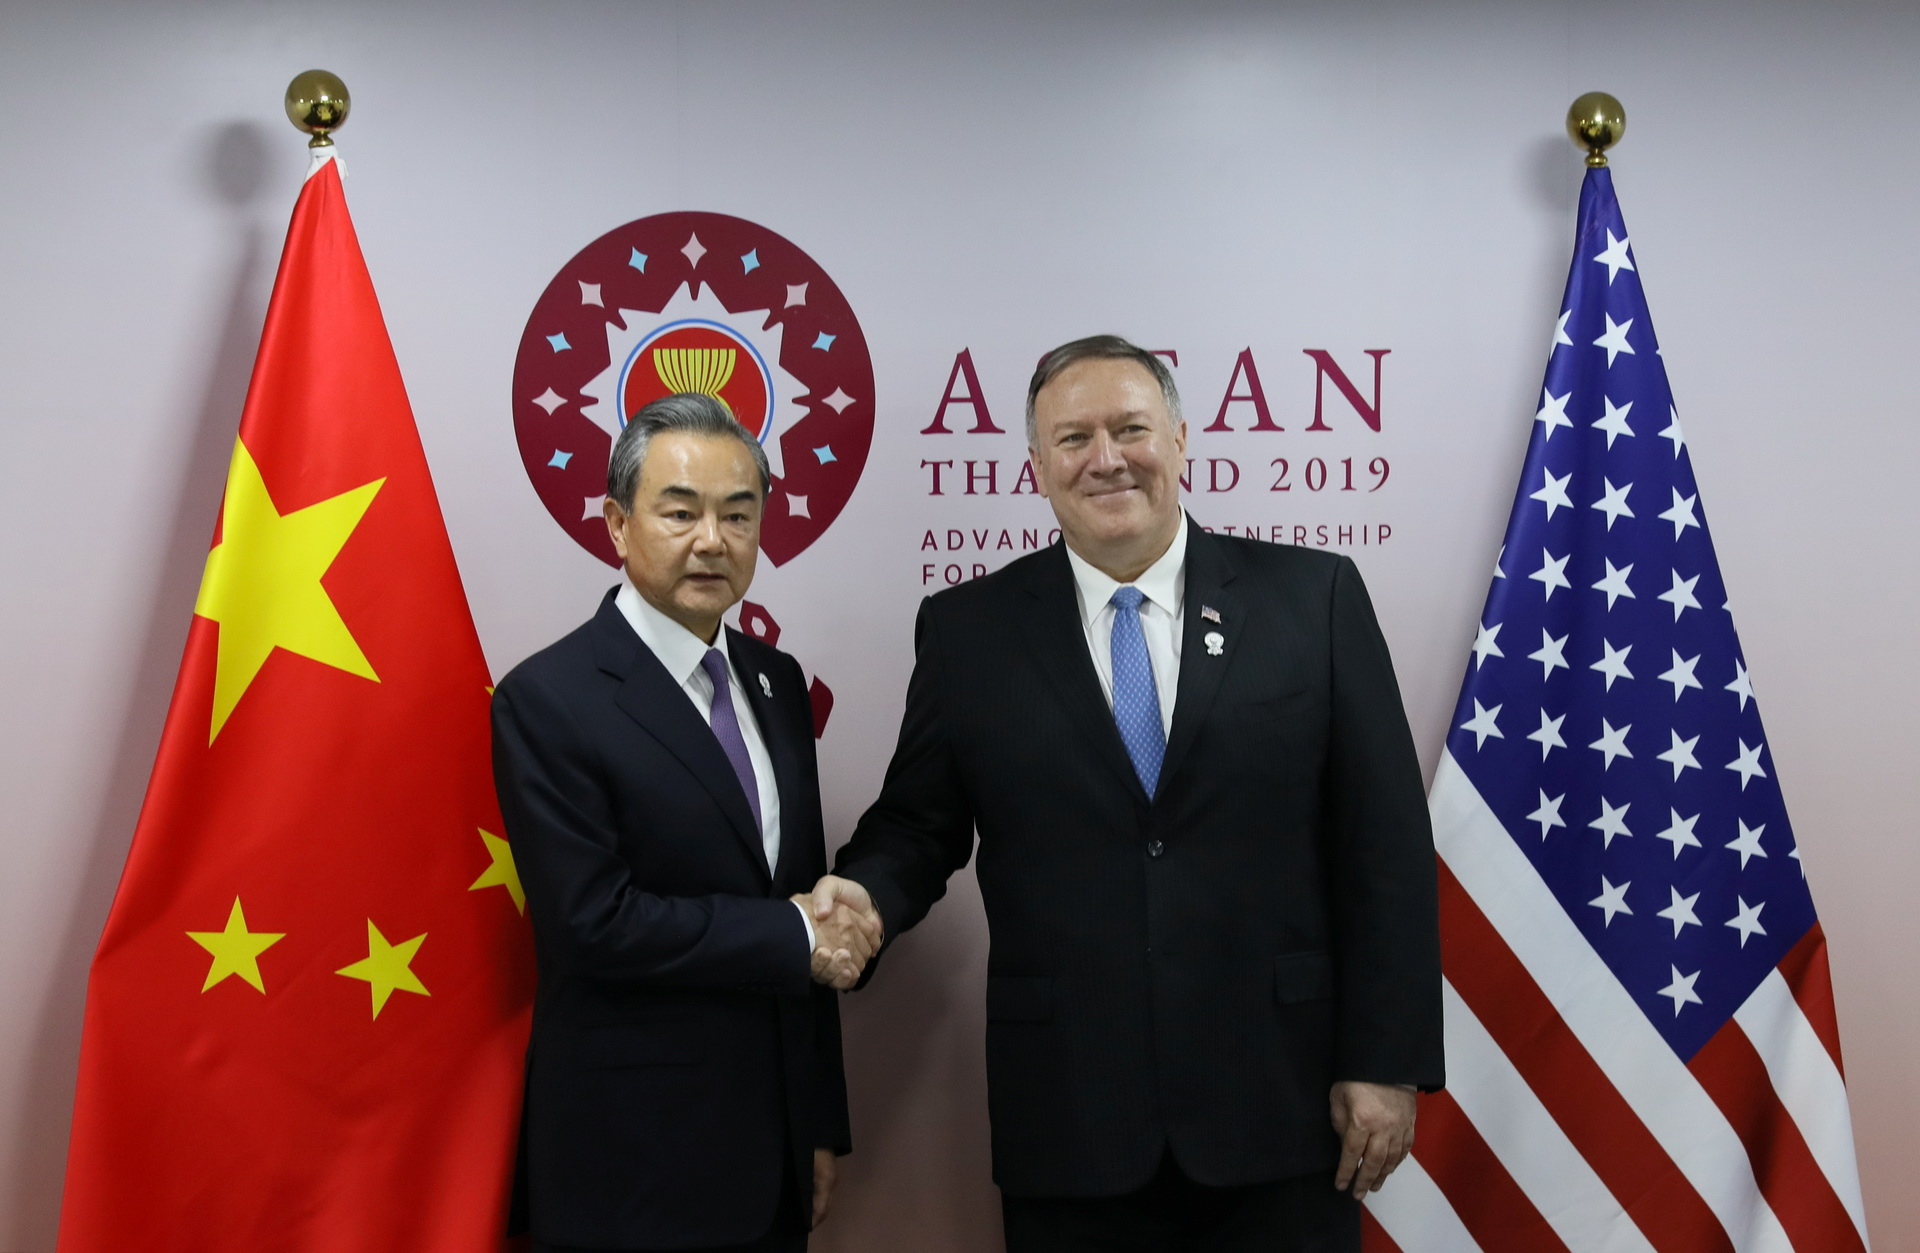 U.S. Secretary of State Mike Pompeo shakes hands with Chinese Foreign Minister Wang Yi on the sidelines of the ASEAN Foreign Ministers' Meeting in Bangkok, Thailand, August 1, 2019. Photo: Reuters